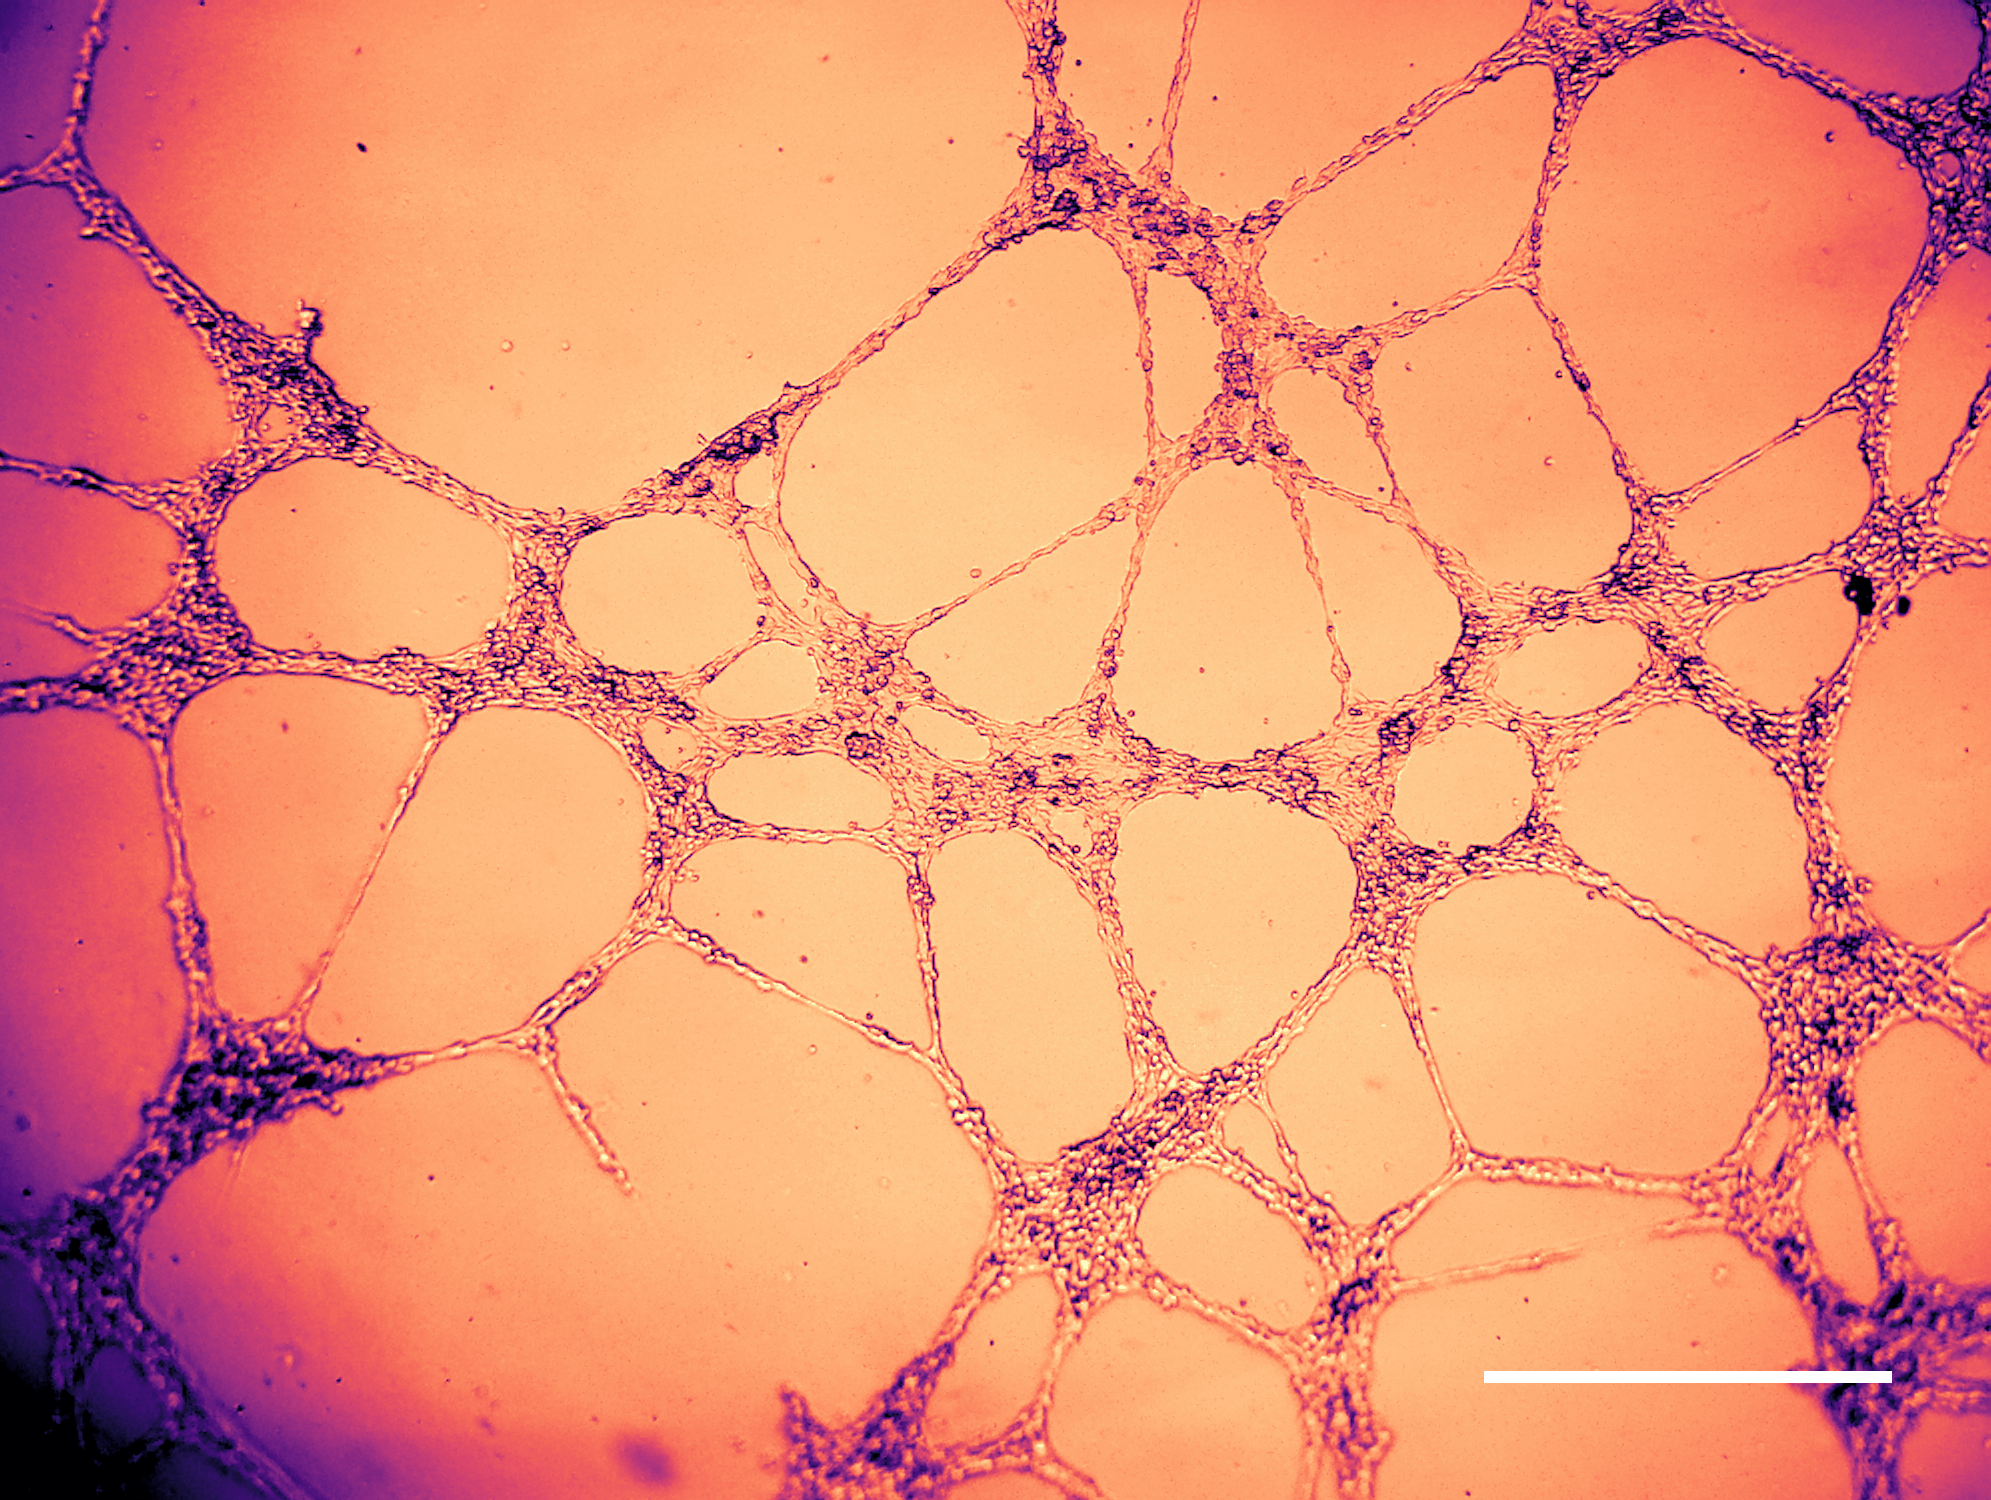 A microscopic photo showing some early signs of bovine (cow) endothelial tube formation